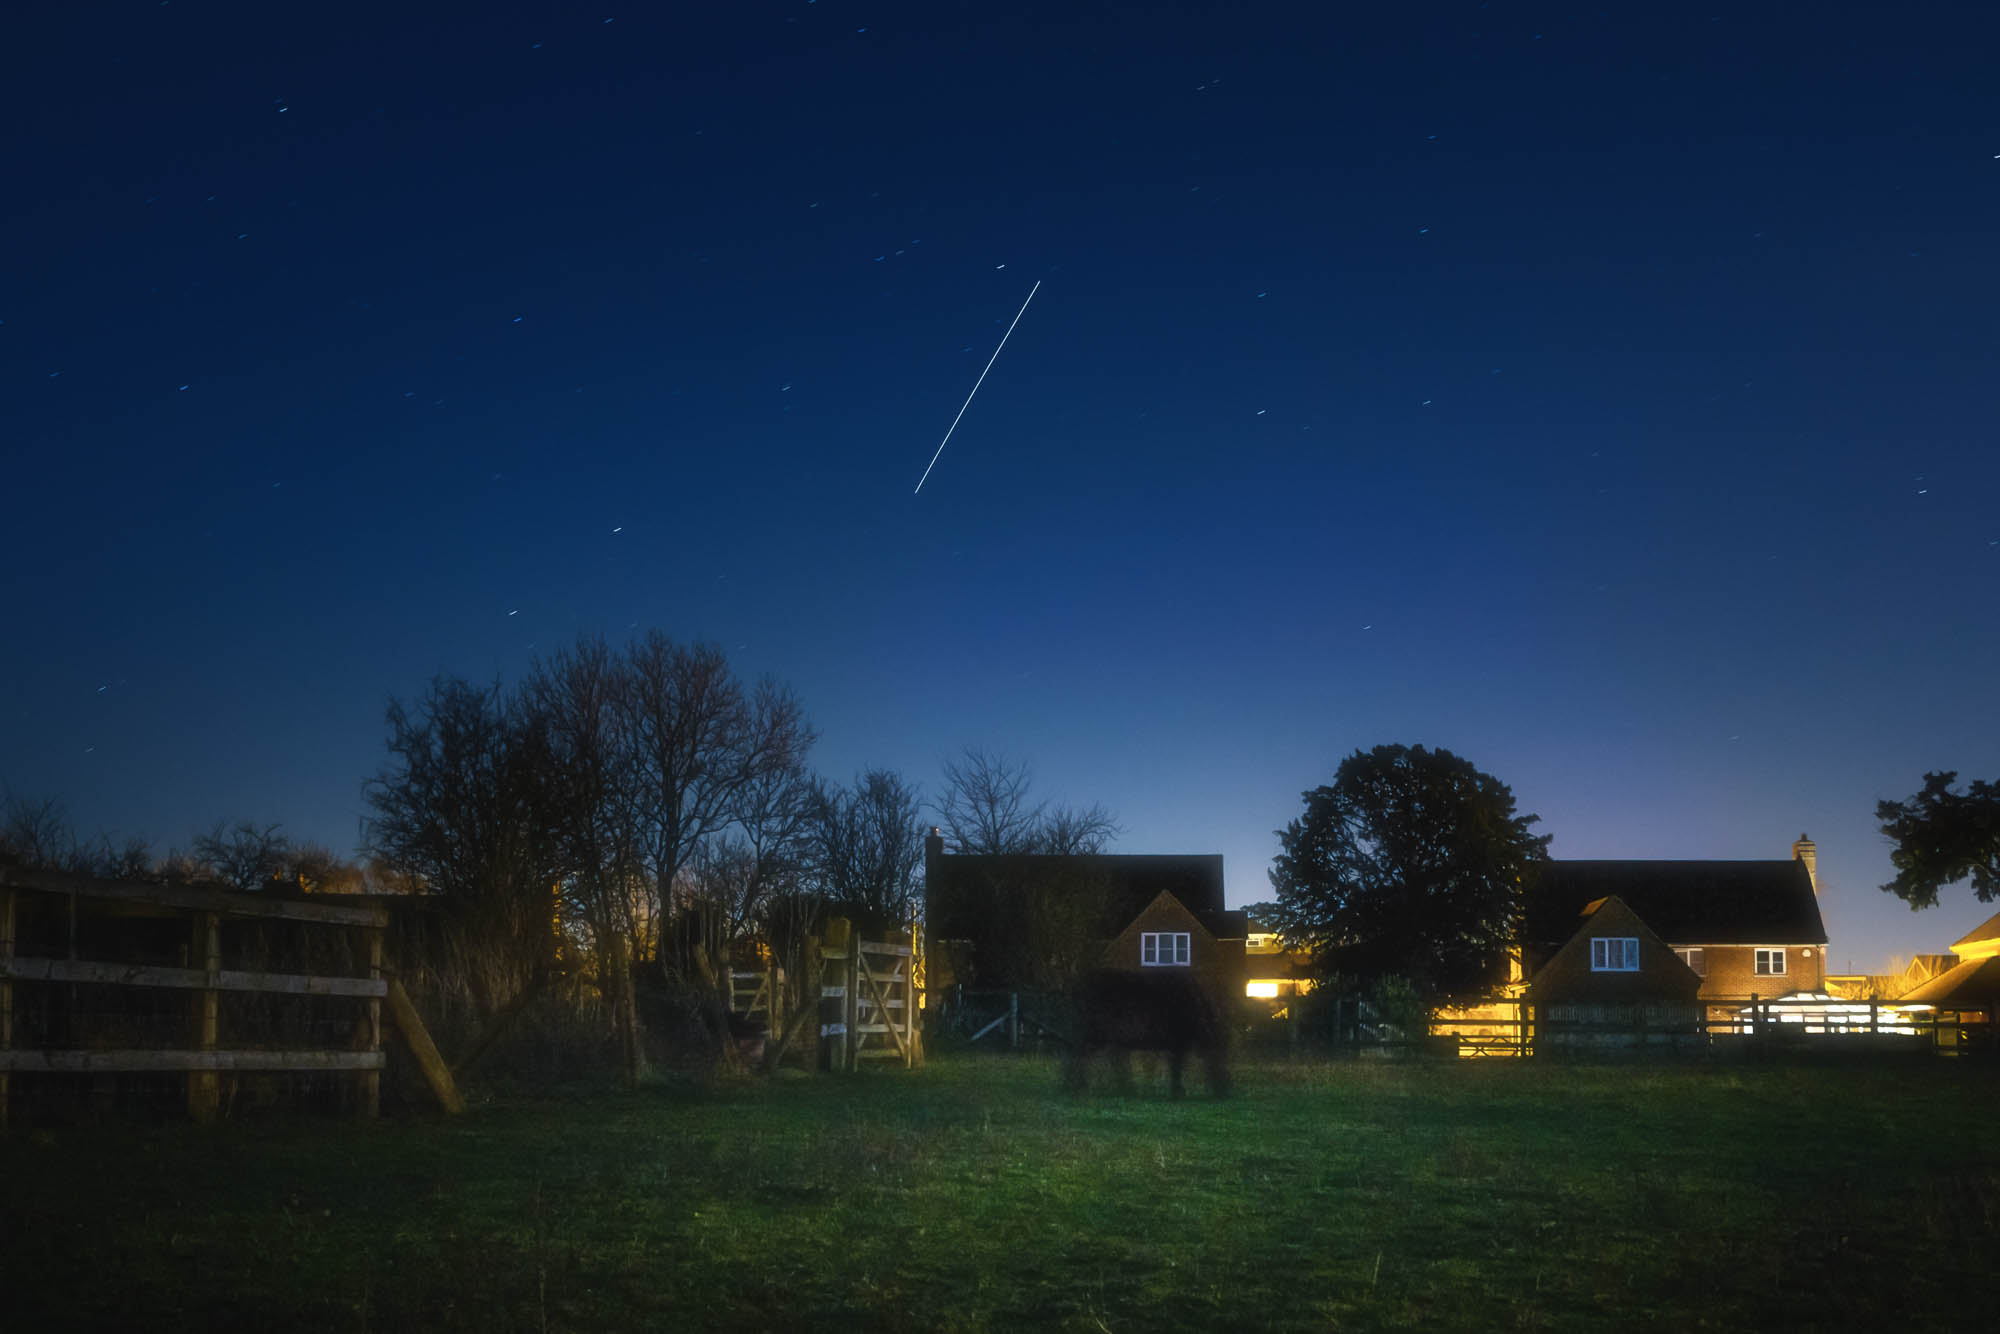 Space station captured over a suburban landscape during the blue hour